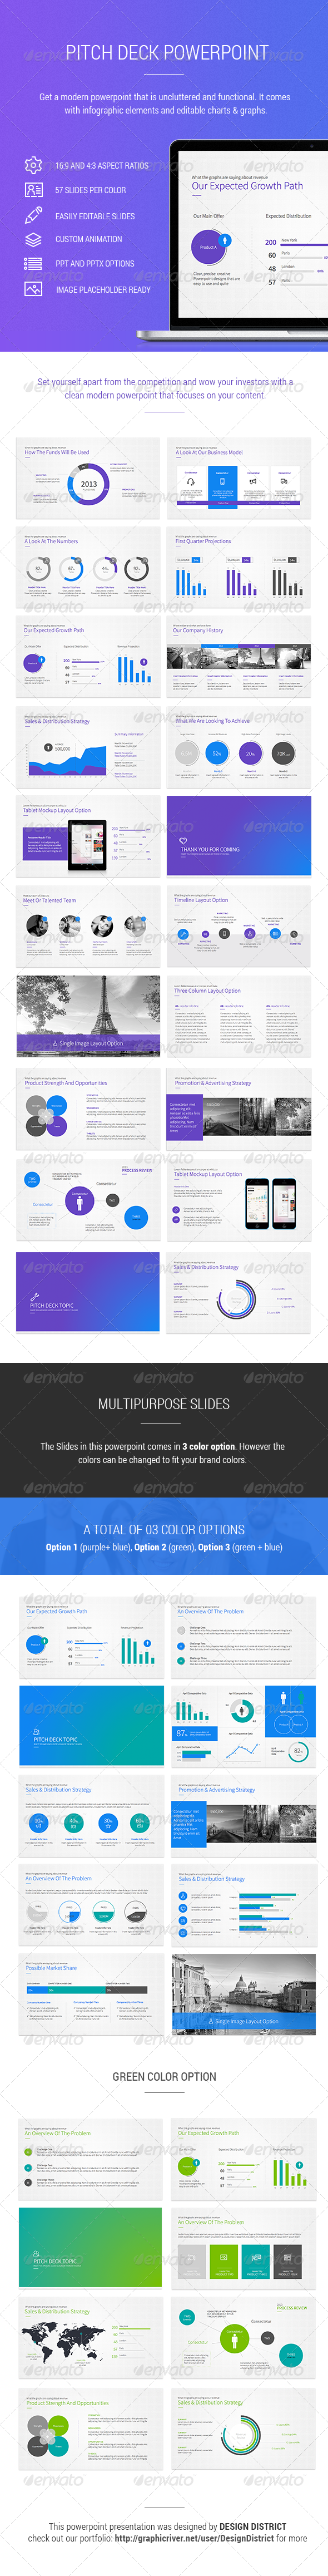 GraphicRiver Pitch Deck Powerpoint 7546326